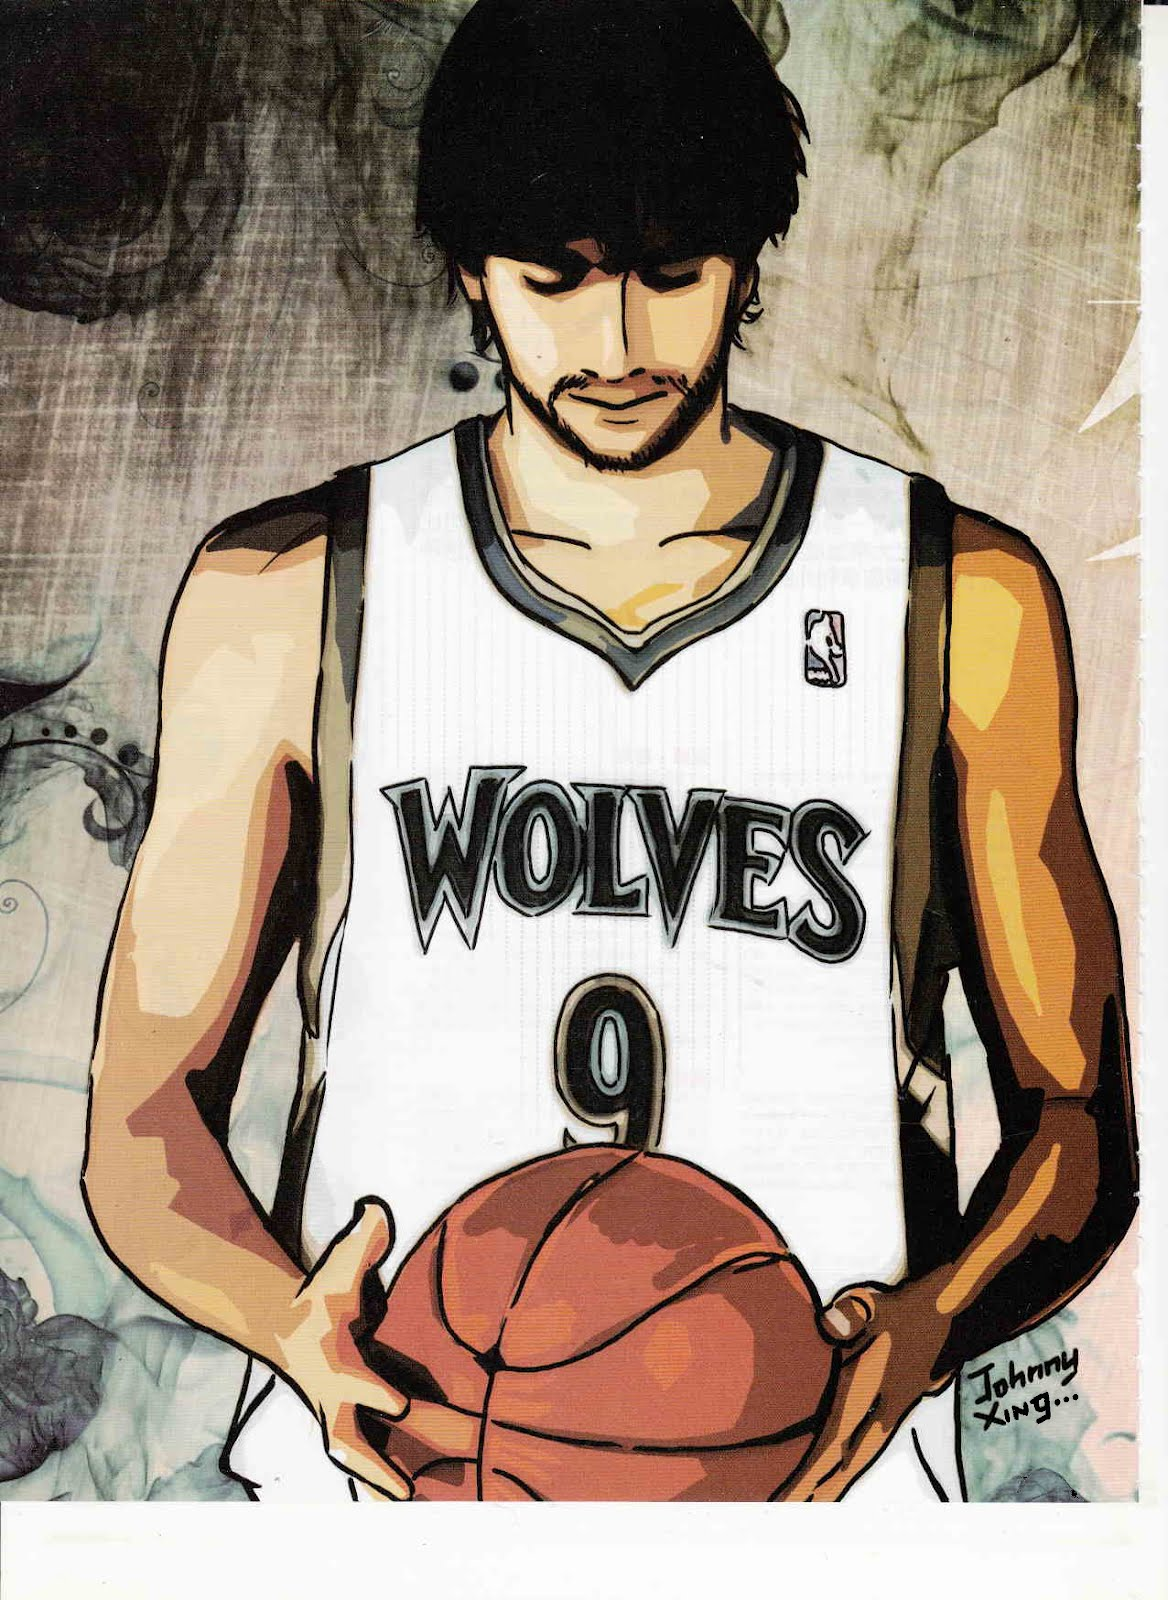 RICKY RUBIO, MINNESOTA TIMBERWOLVES POINT GUARD